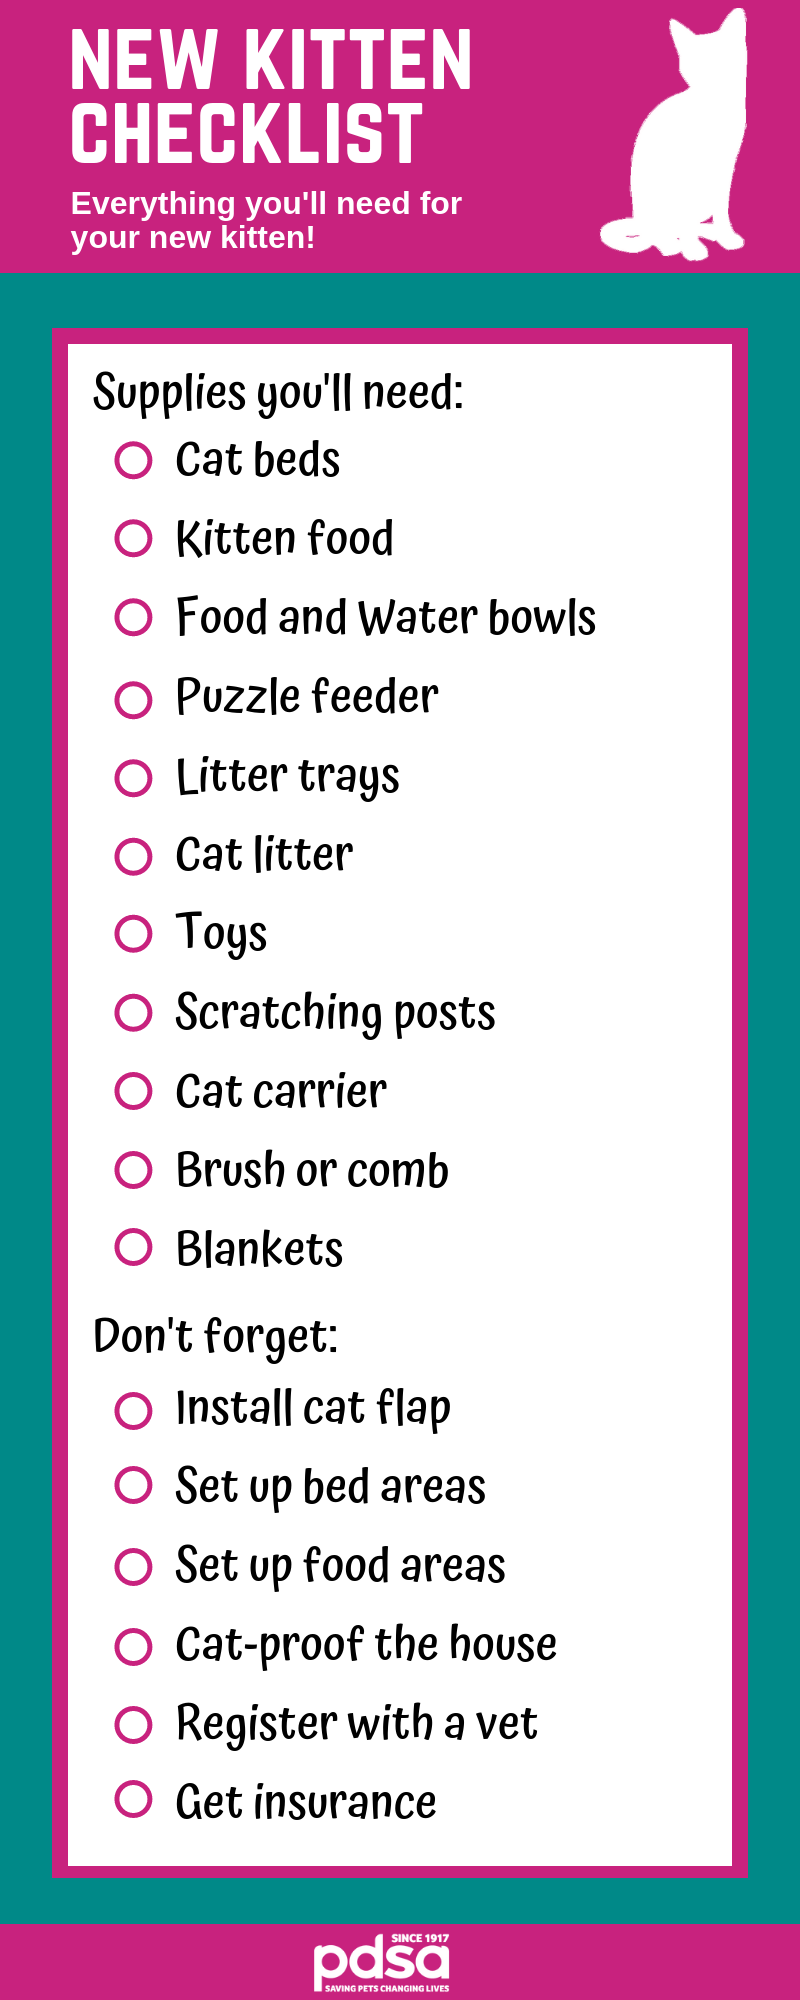 New Kitten Checklist Tips For Owning Young Cats Cpc Cares Blog Cat Checklist Kitten Checklist Pregnant Cat